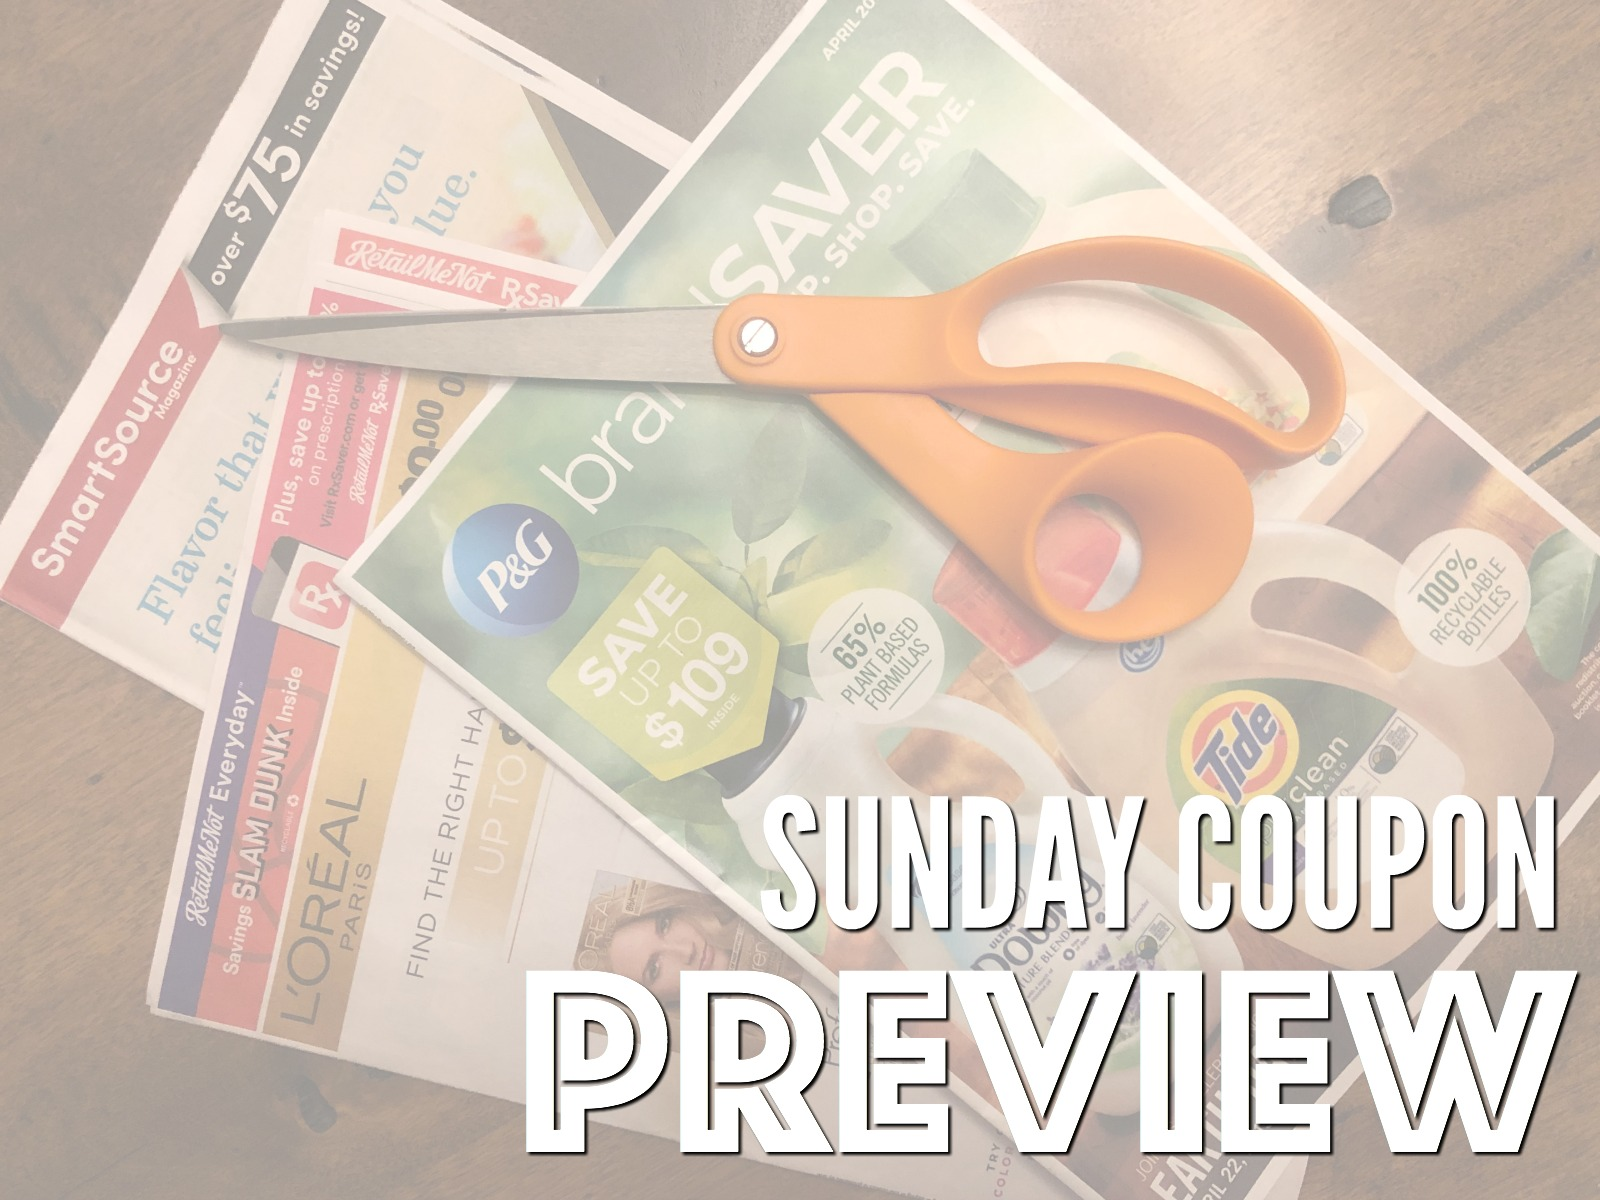 Sunday Coupon Preview For 5/5 - Three Inserts on I Heart Publix